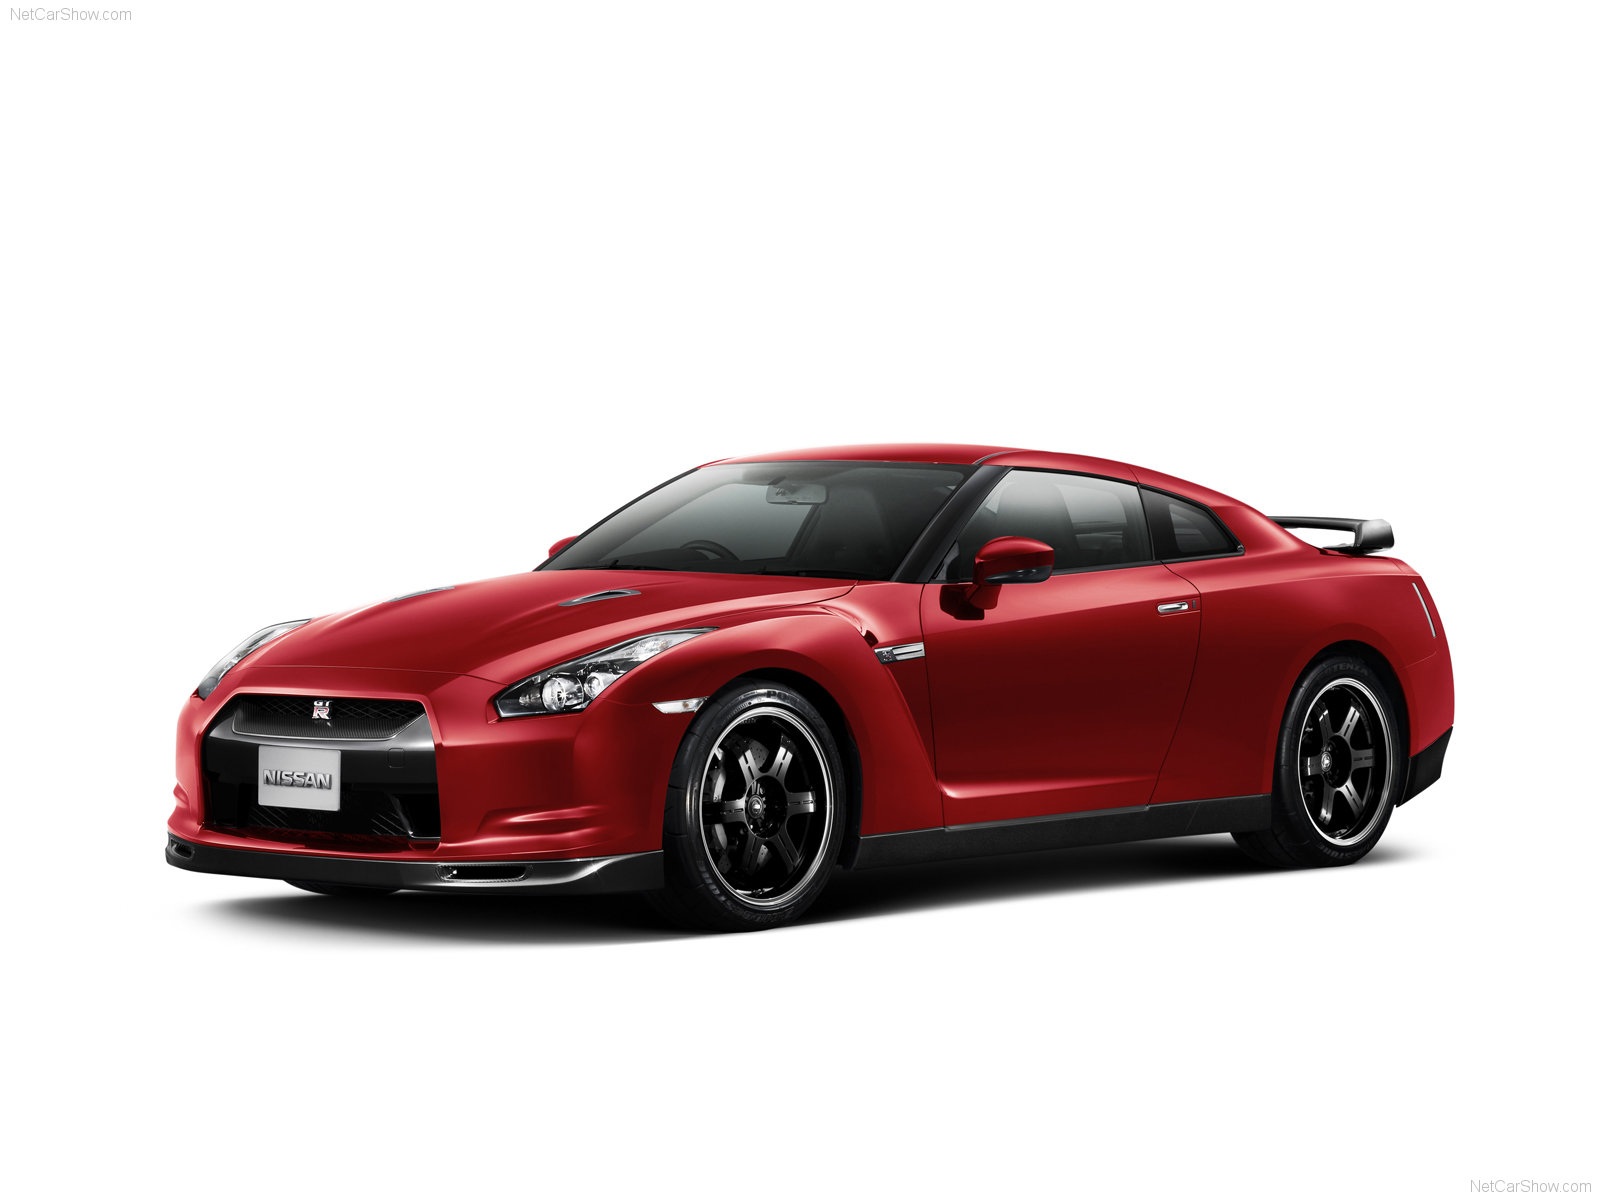 NISSAN SKYLINE GTR WALLPAPER : Free Car Wallpaper 4U